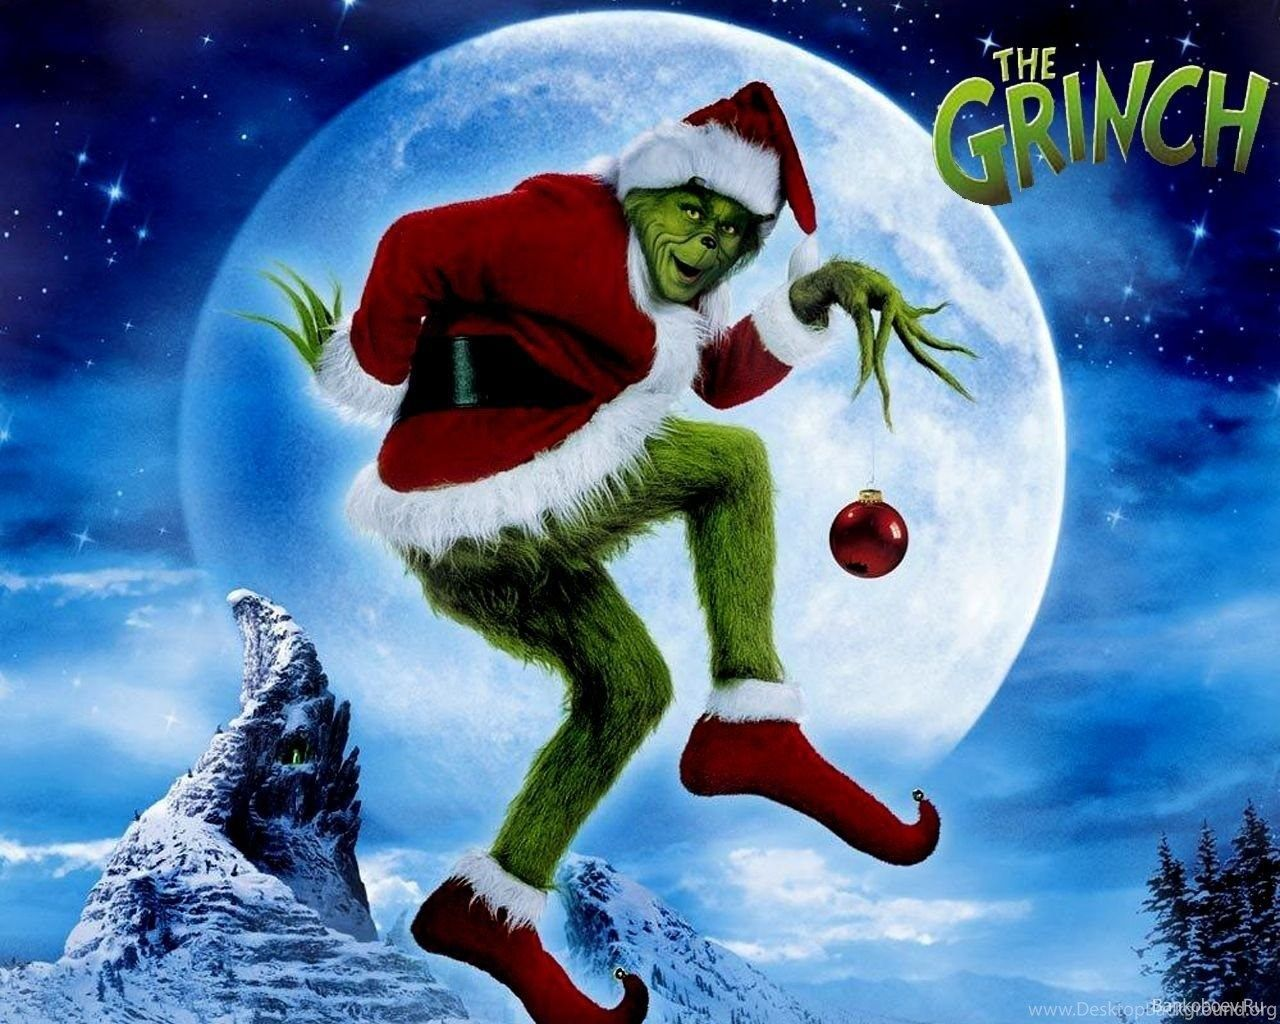 Grinch Wallpapers   Top Grinch Backgrounds   WallpaperAccess 1280x1024